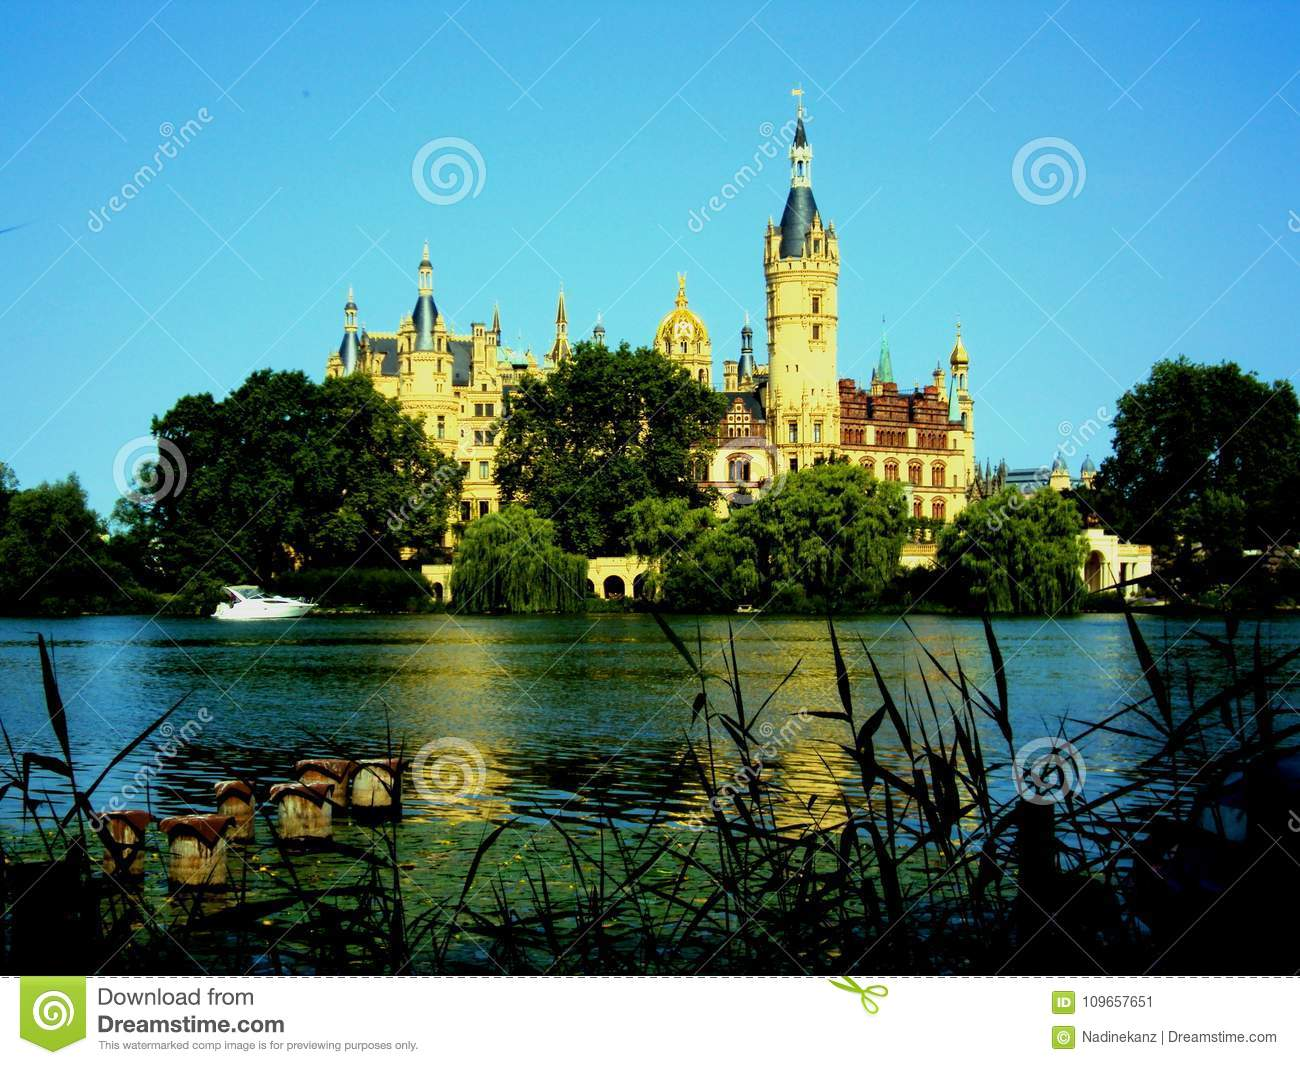 Castillo de Schwerin con el lago en frente en Mecklemburgo-Pomerania Occidental, Alemania